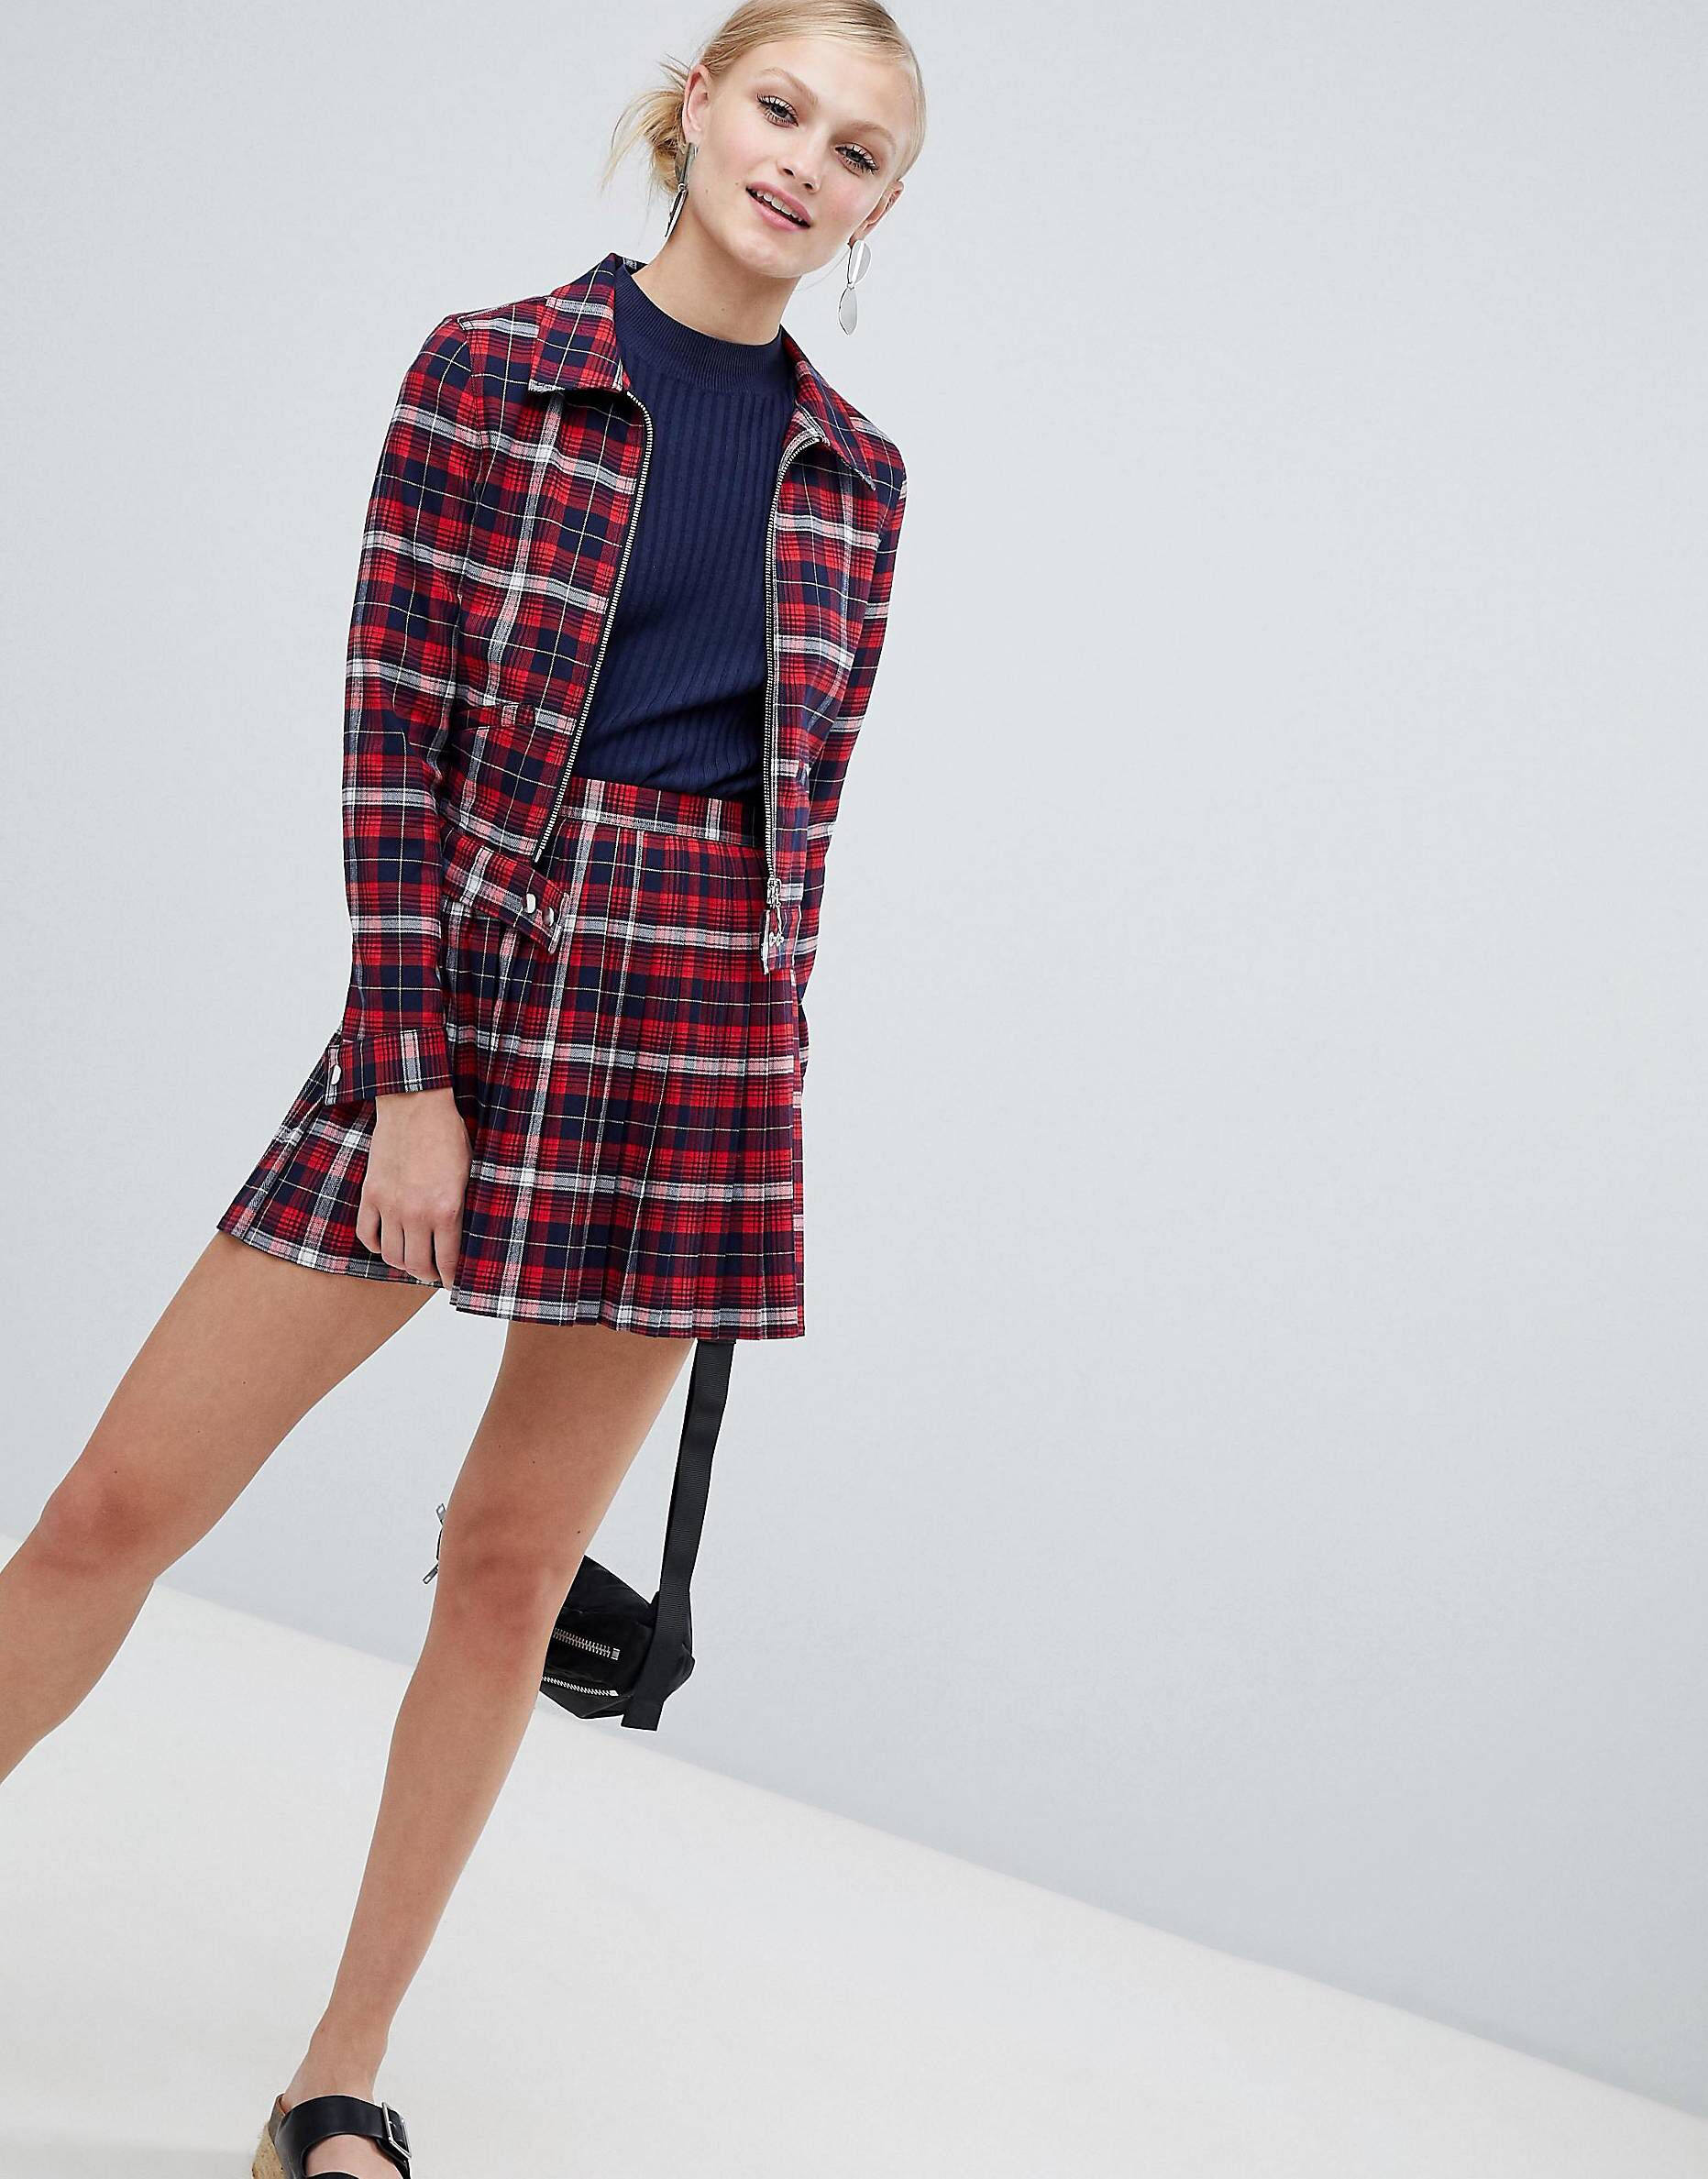 3b4e62733e Monki Check Pleated Mini Skirt Two-Piece in 2019 | Outfits | Pleated ...